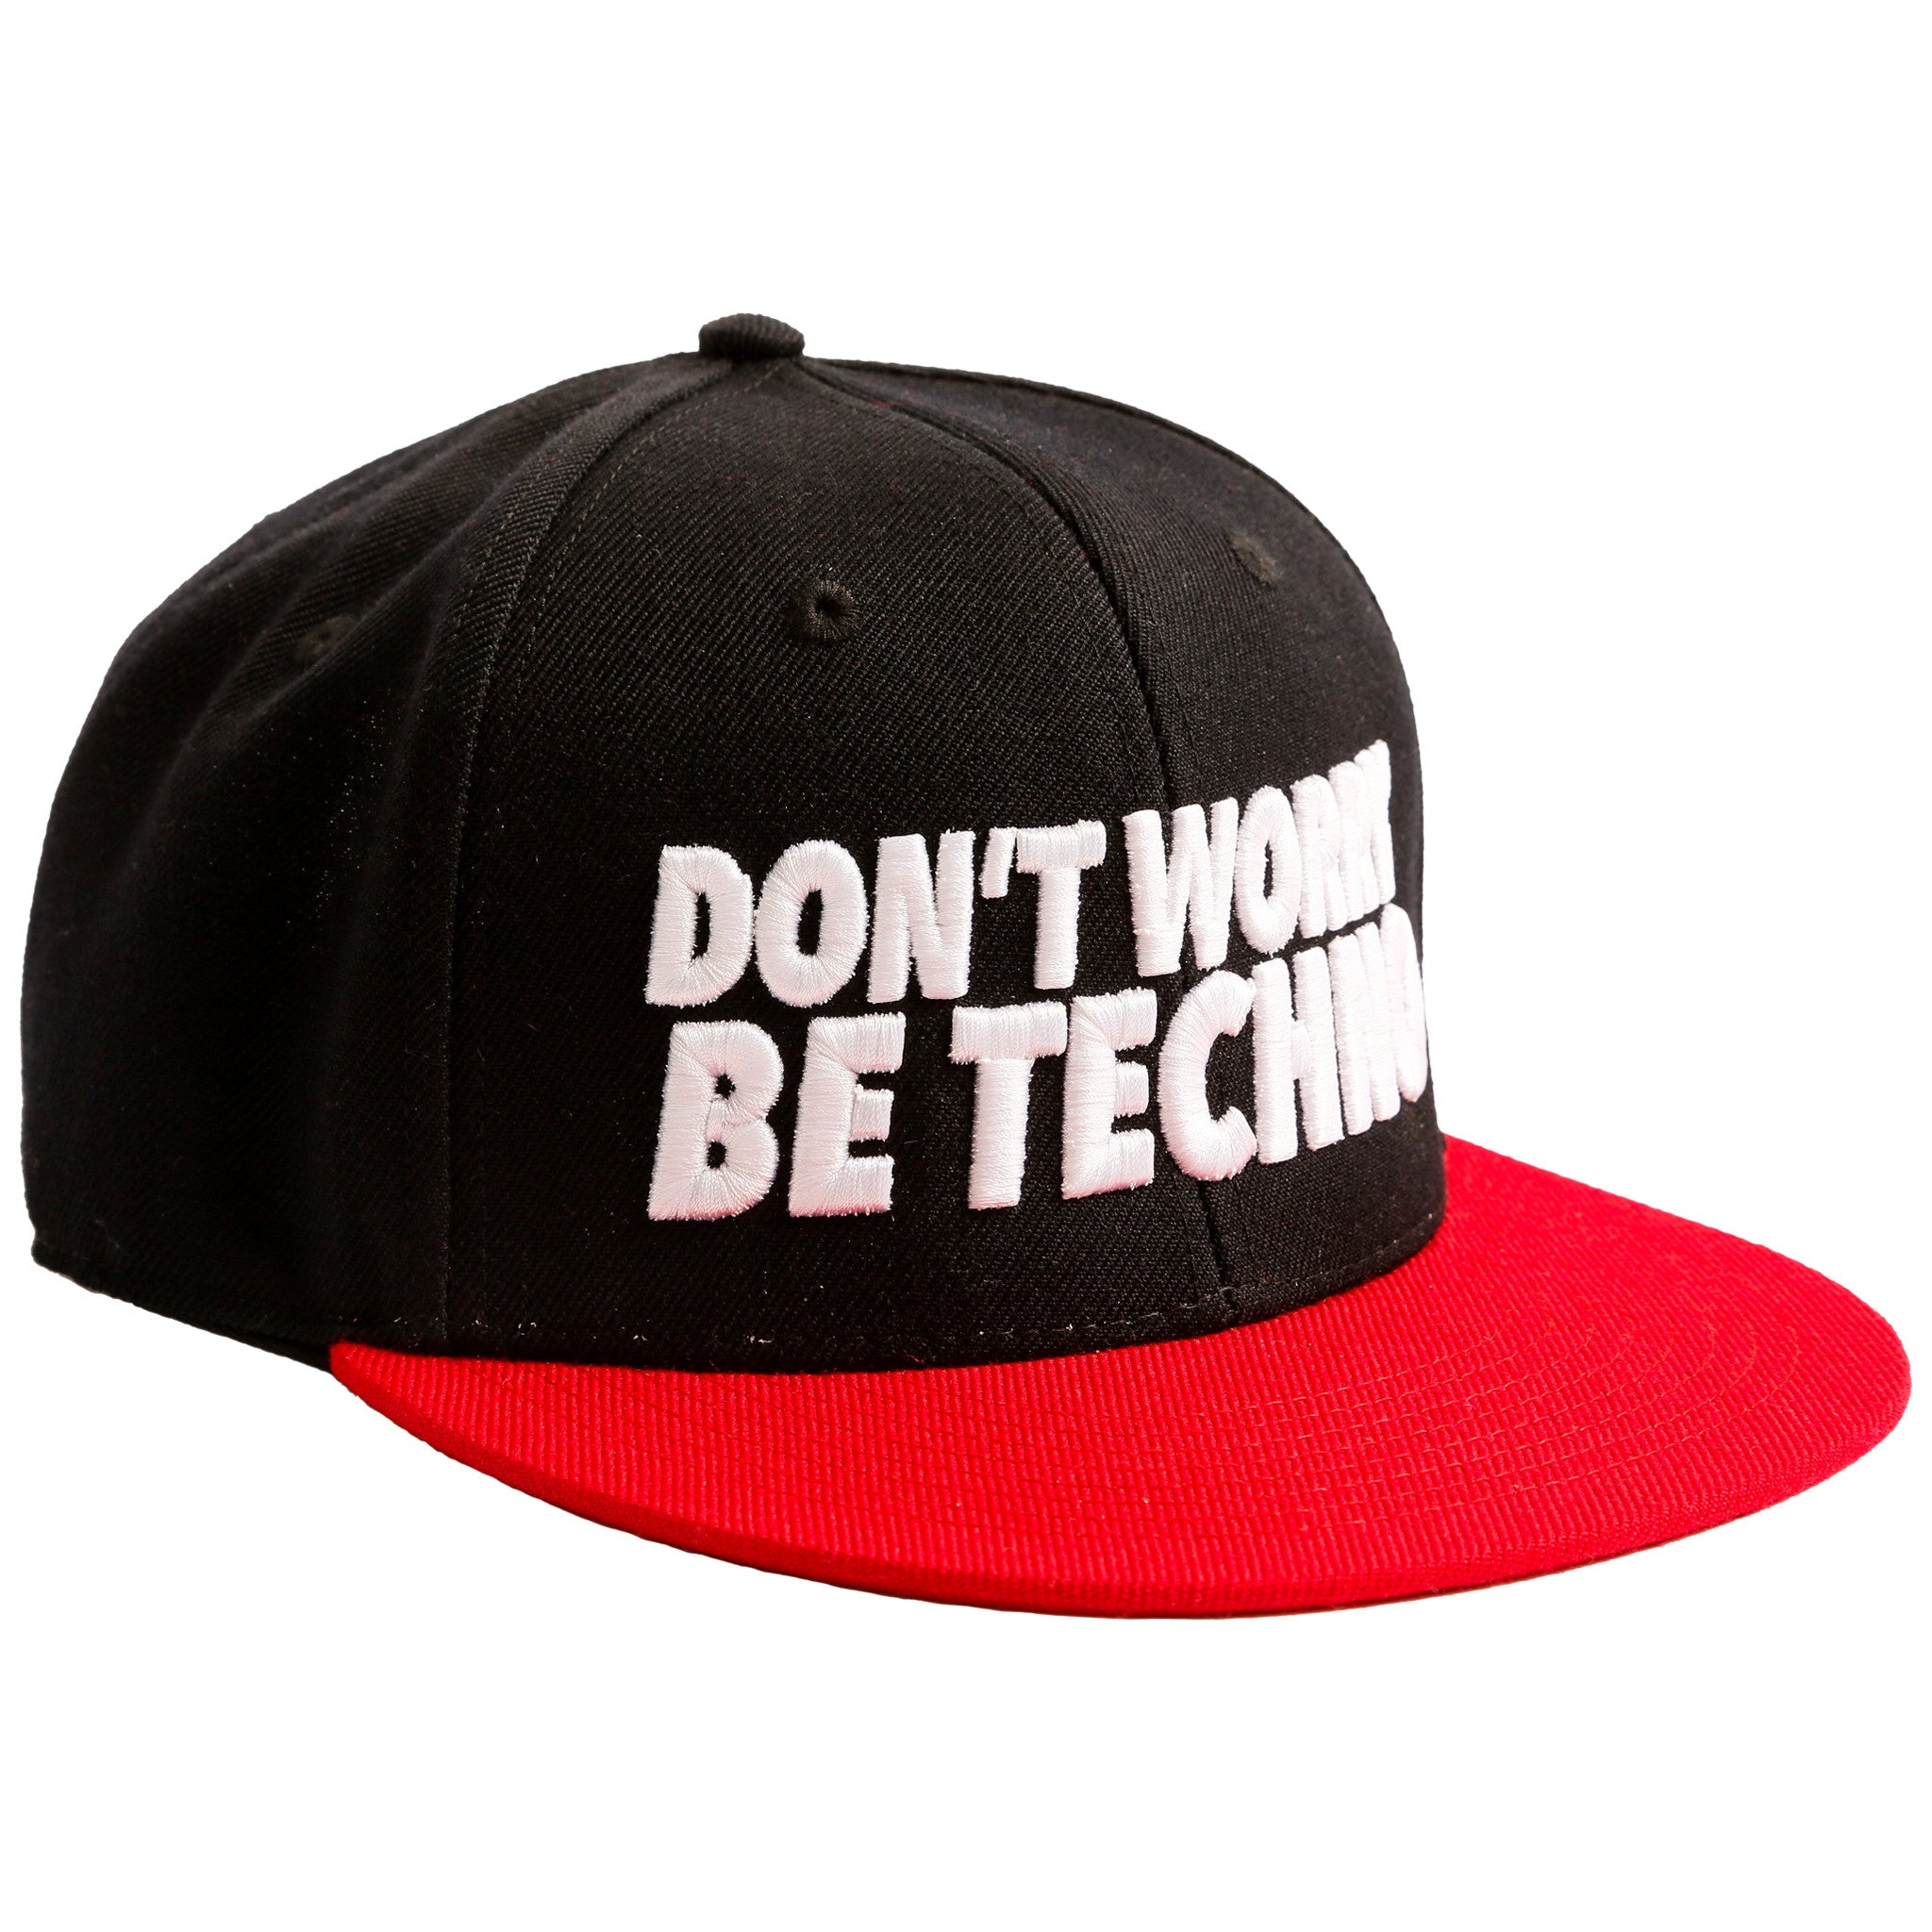 Don't Worry, Be Techno - Snapback Promo - Cappellino by Fol The Brand